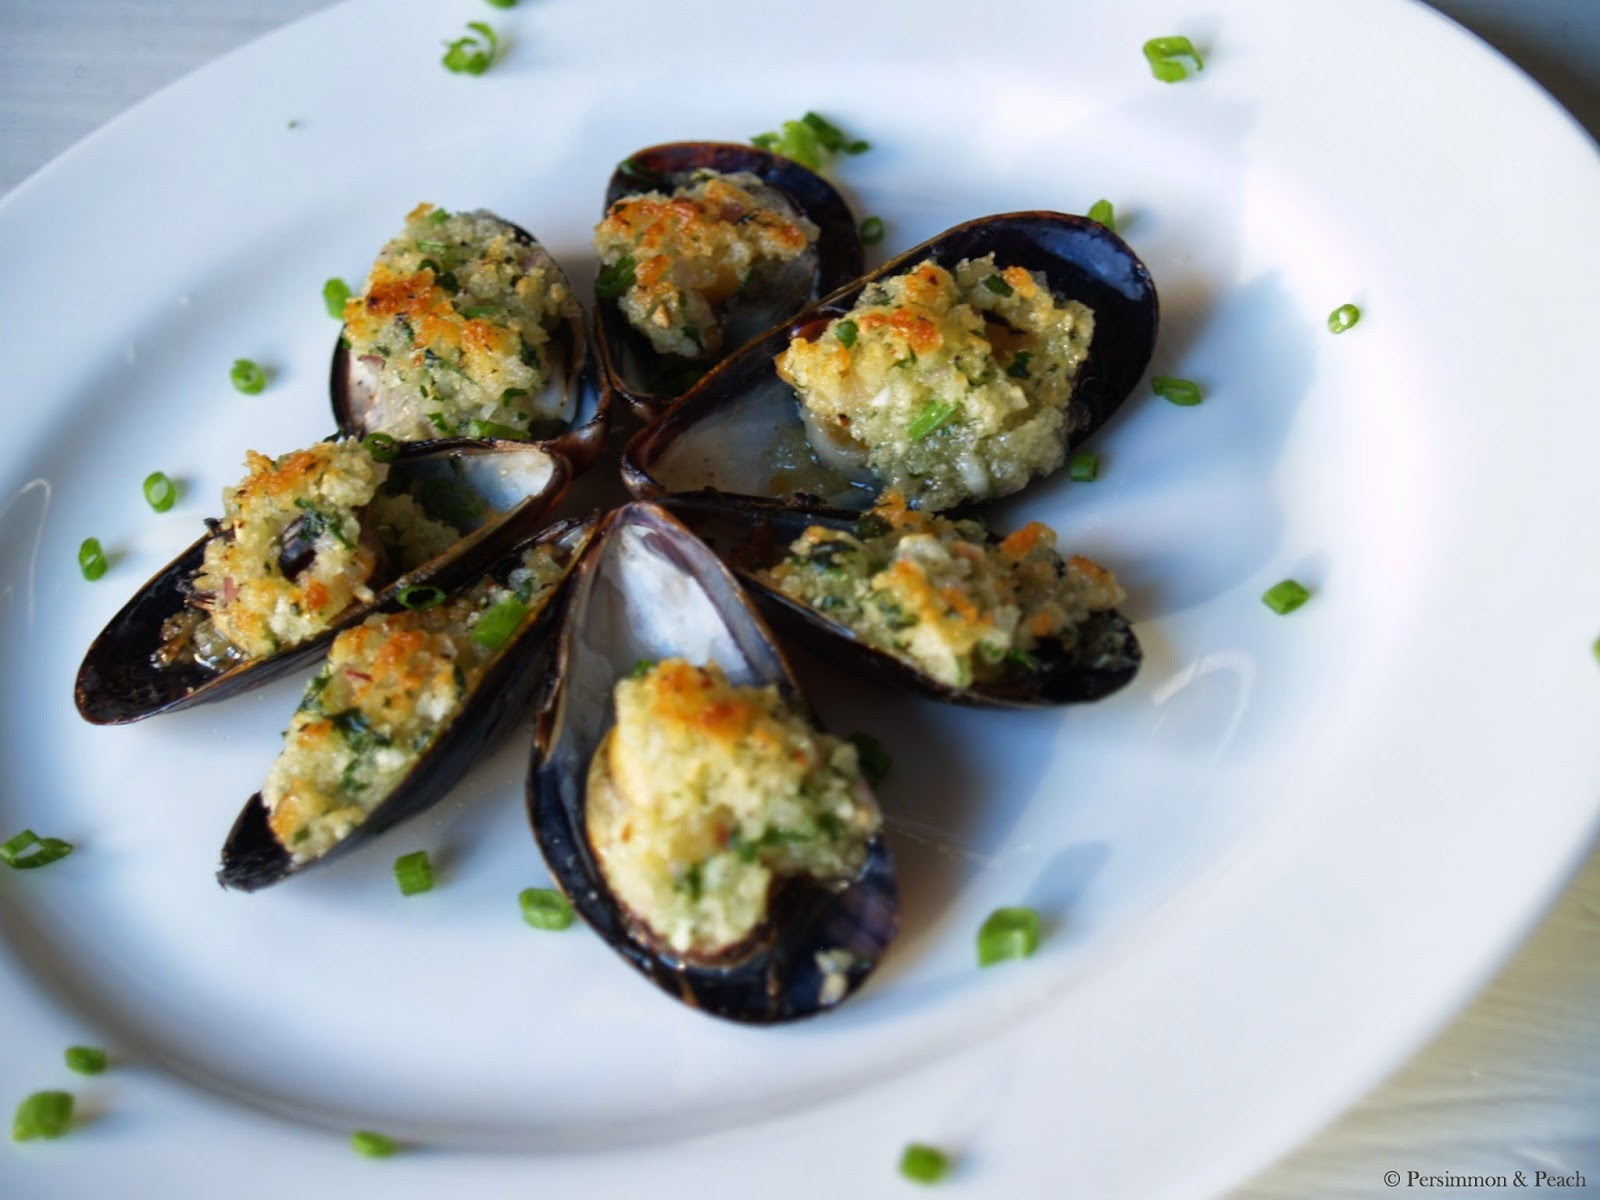 Baked Mussels With Crisped Bread Crumbs Recipes — Dishmaps